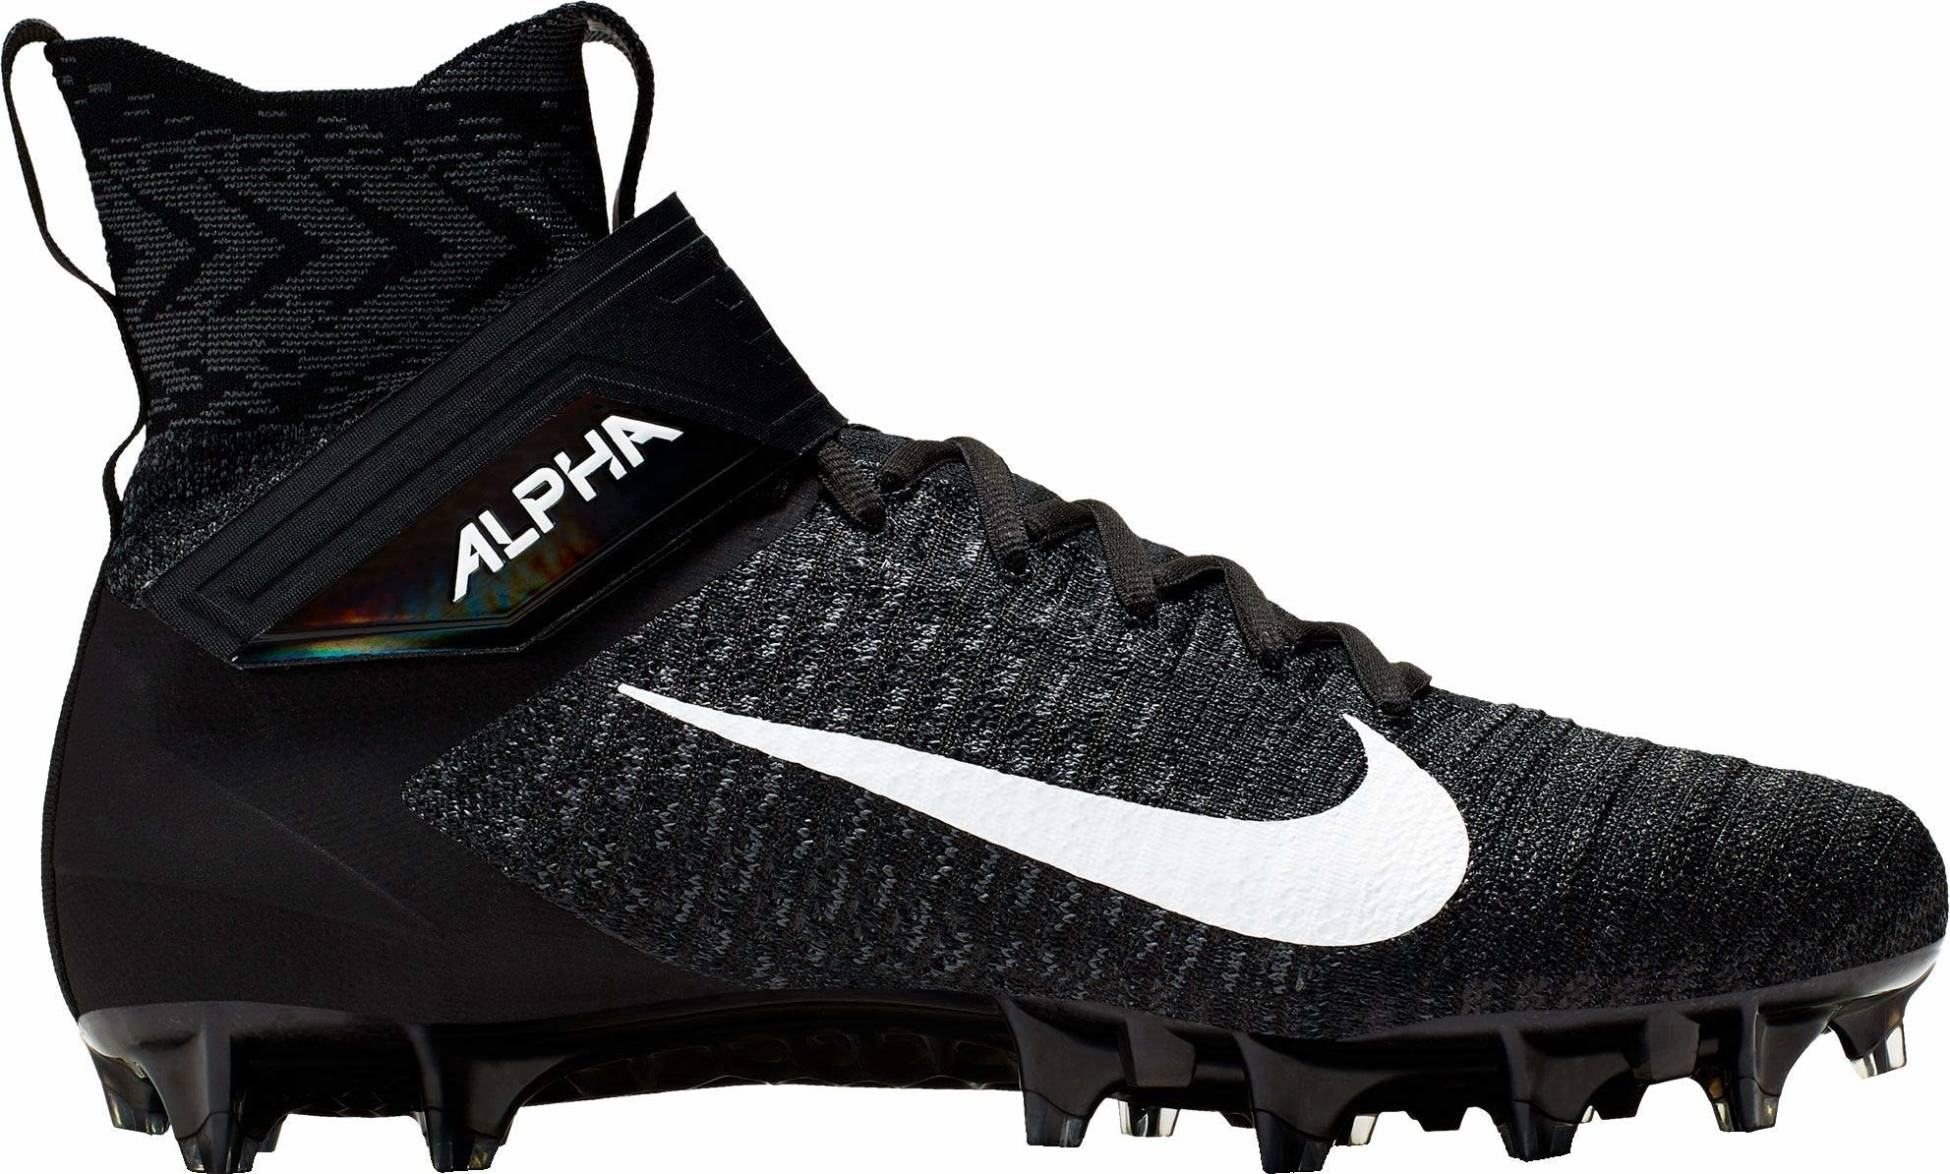 Save 61% on Wide Football Cleats (41